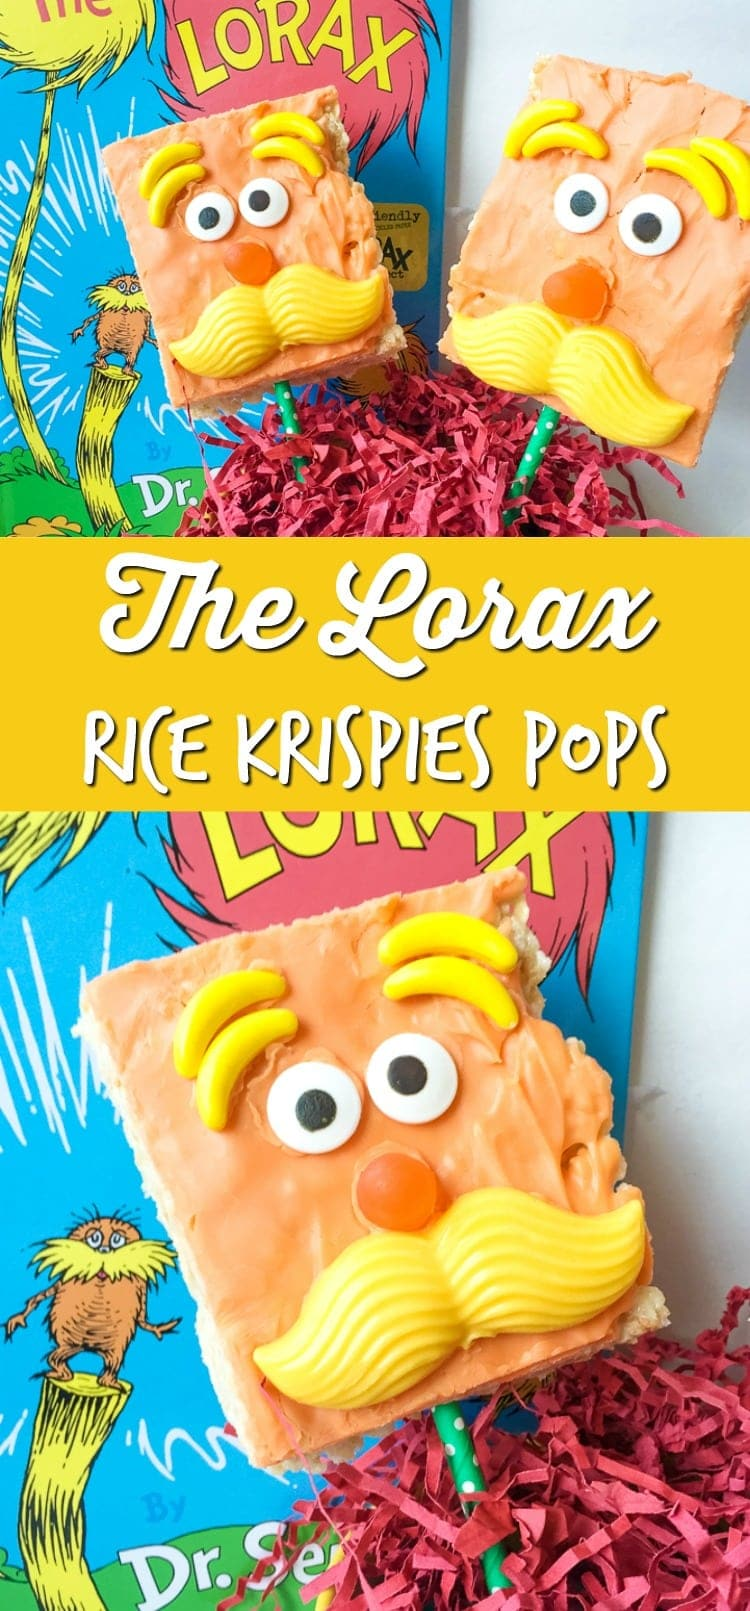 lorax rice krispies pops